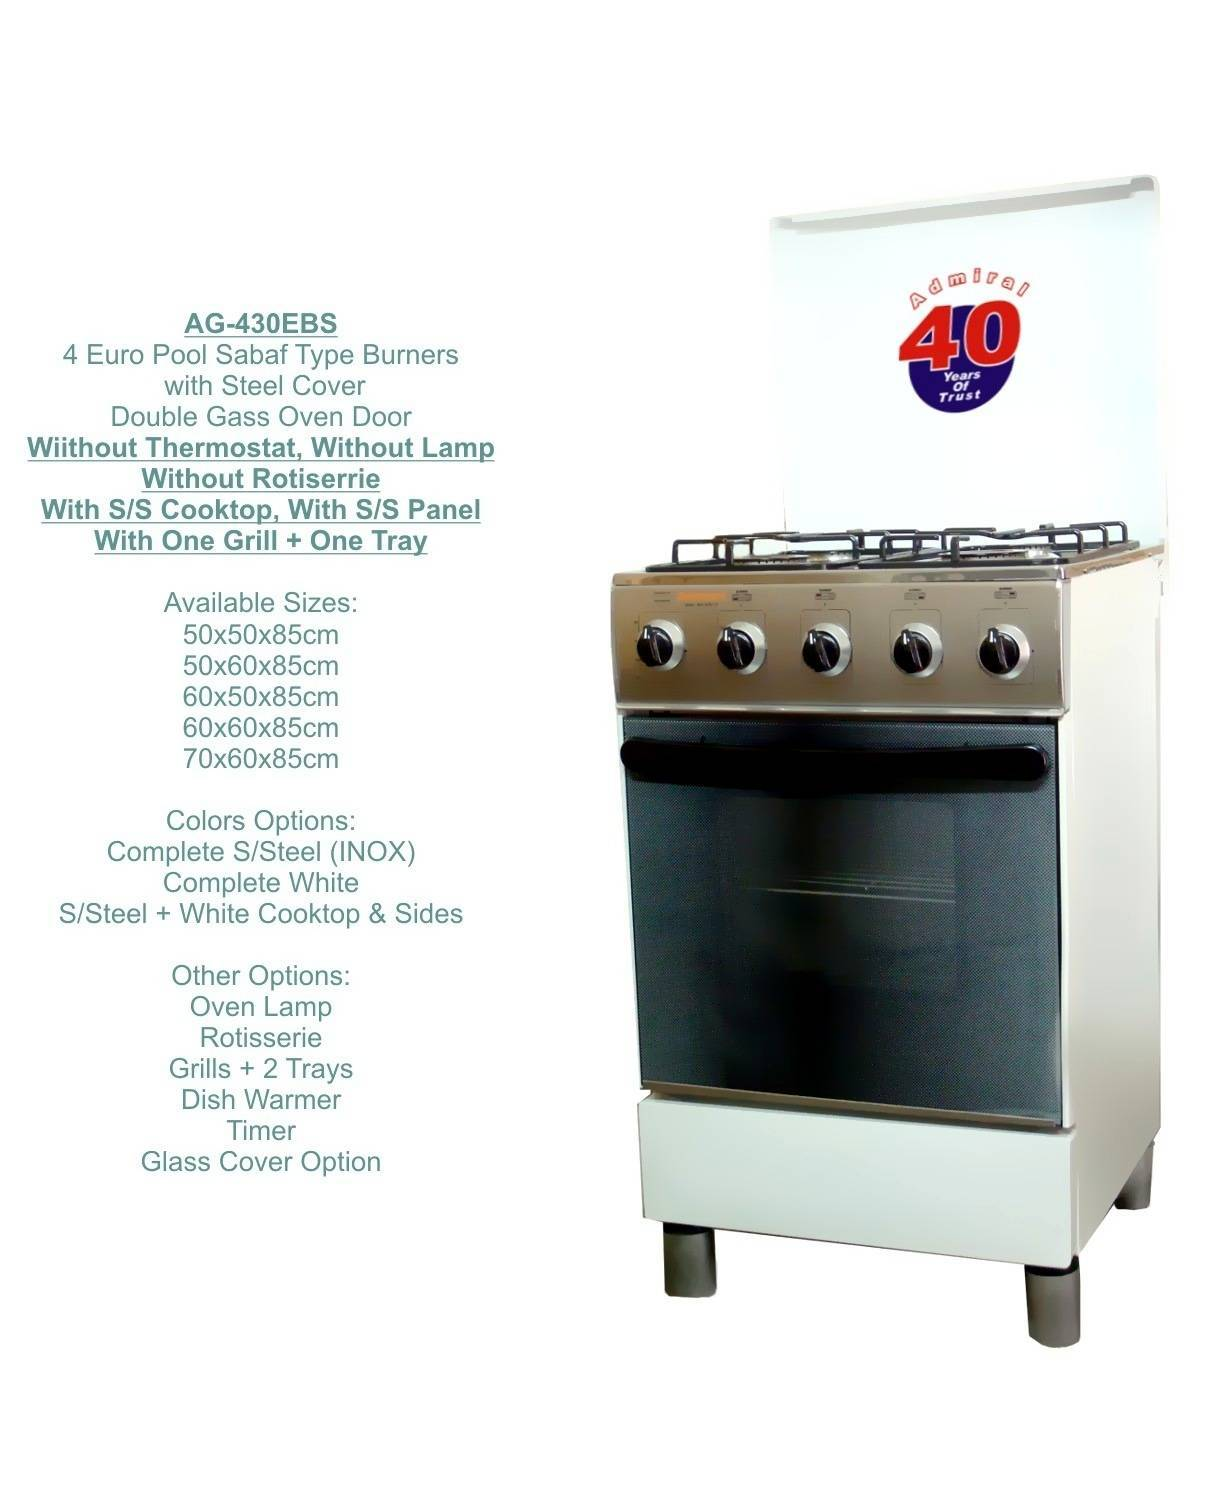 AG-430EBS ADMIRAL 50X50 Steel Cover cooker